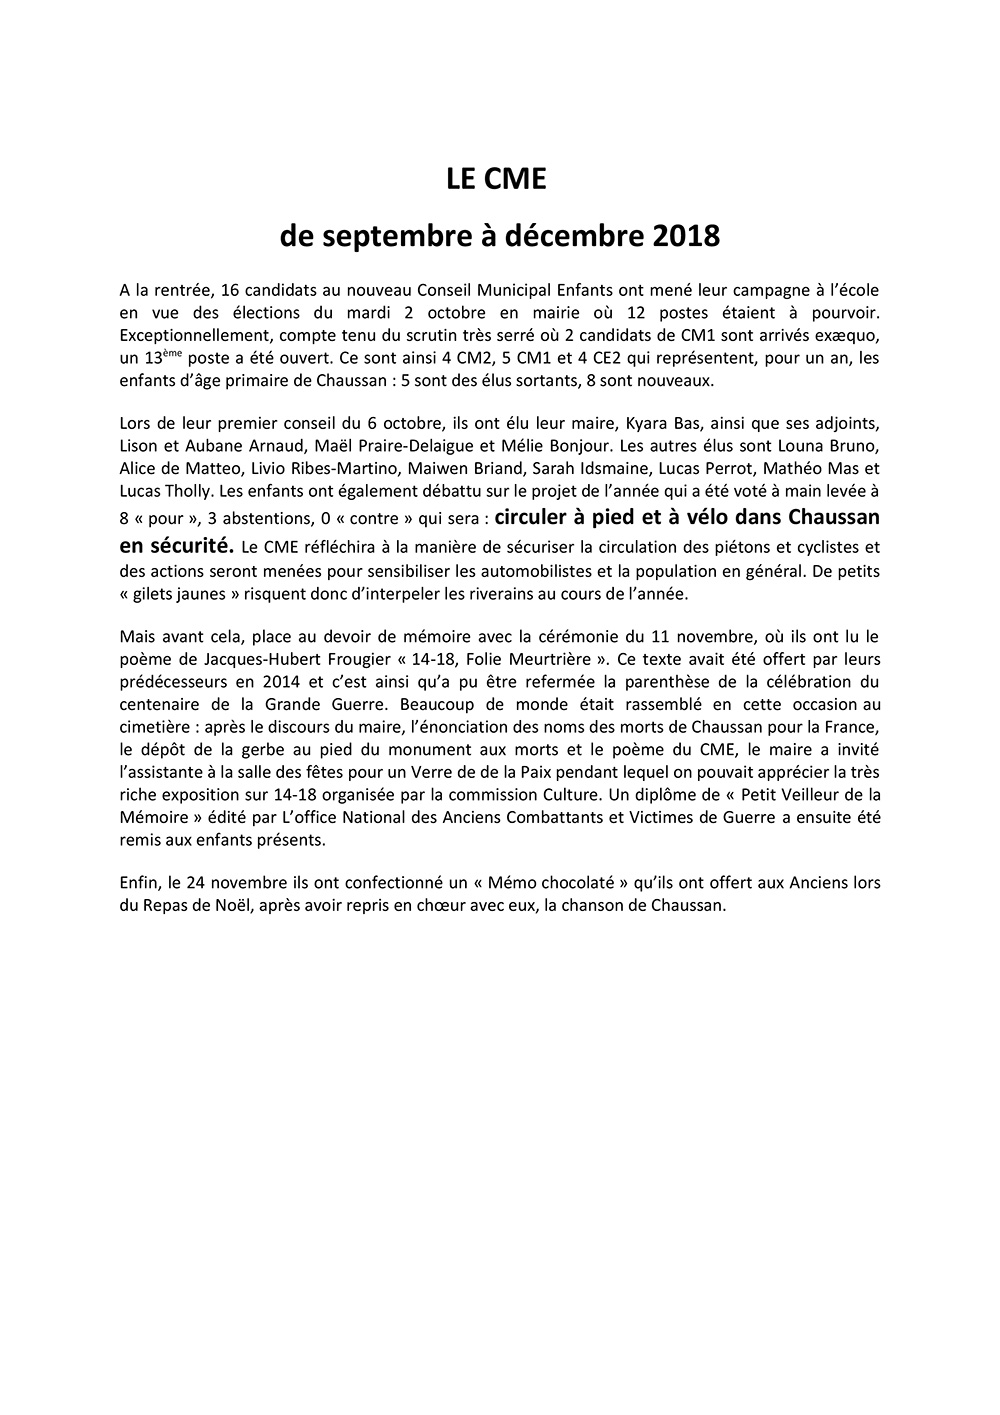 CME de sept a dec 2018